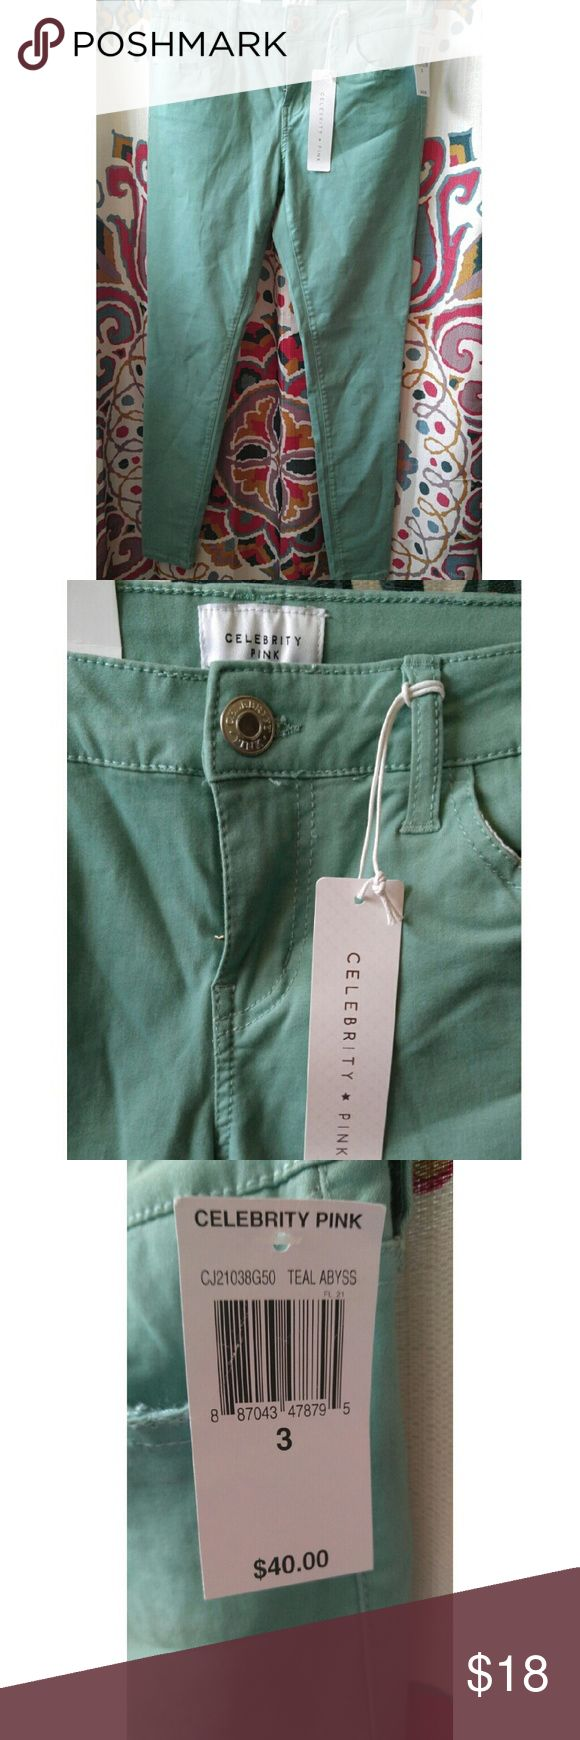 Women's Teal Skinny Jeans New with tags, never worn teal size 3 women's skinny jeans. Celebrity Pink Pants Skinny